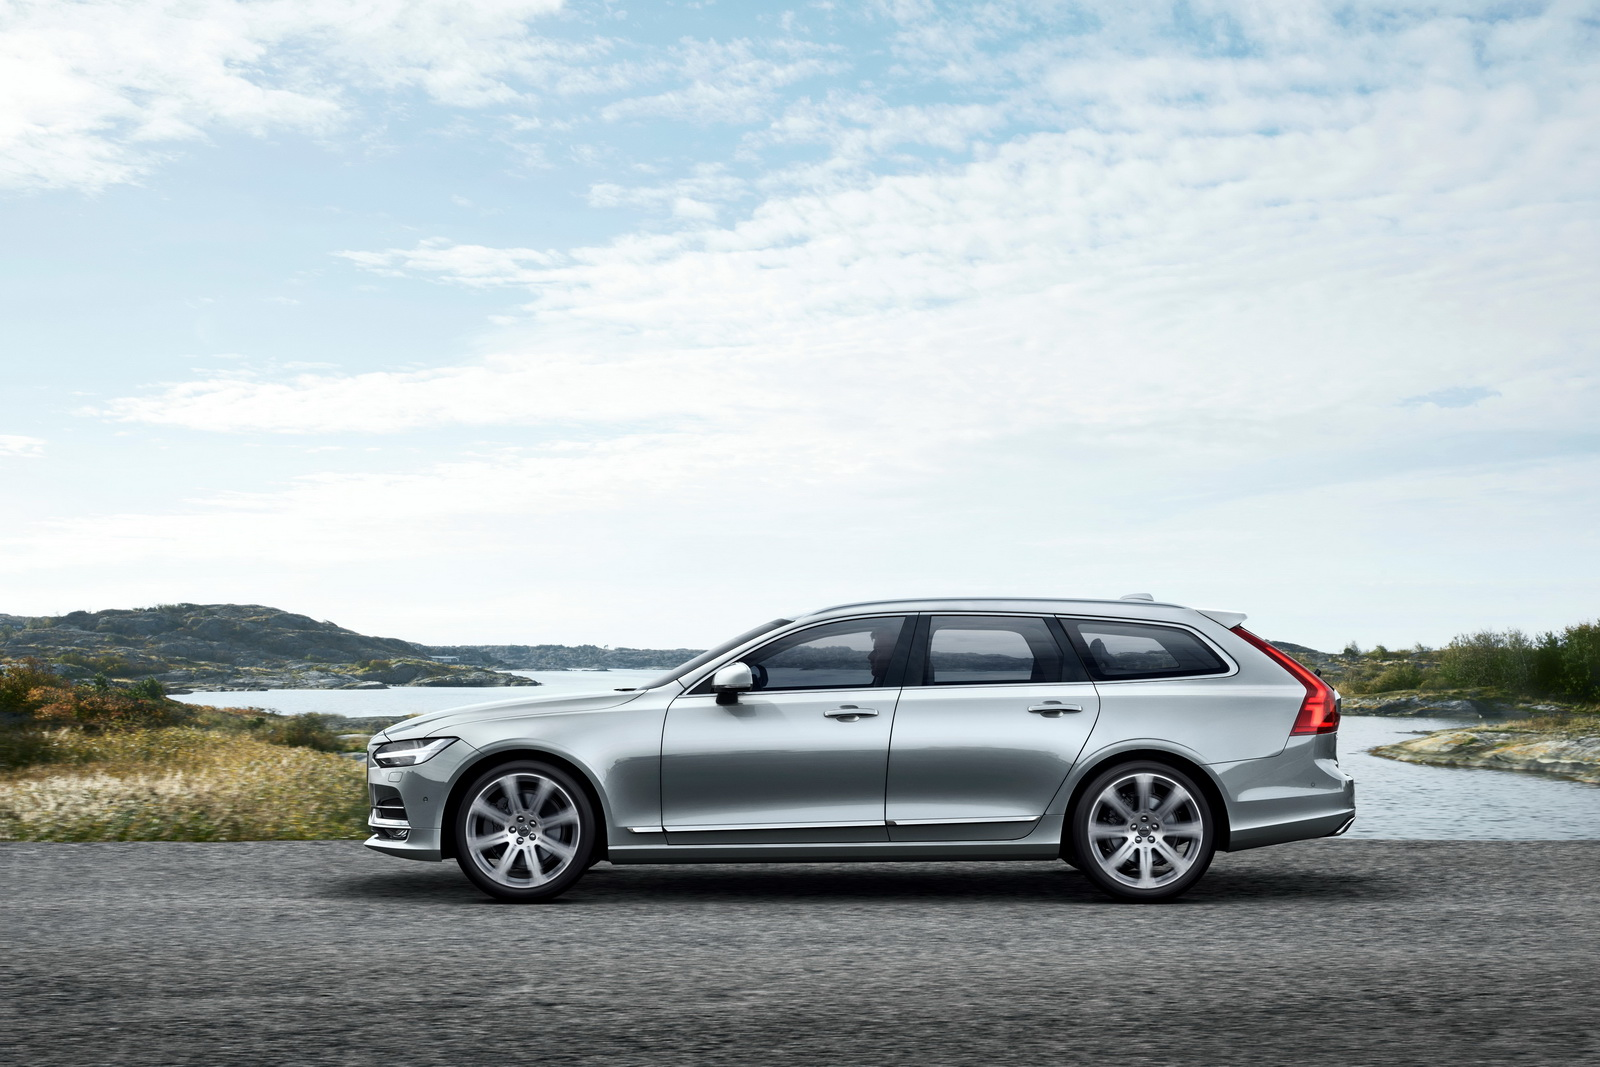 2018 volvo overseas delivery. beautiful overseas photo gallery in 2018 volvo overseas delivery p